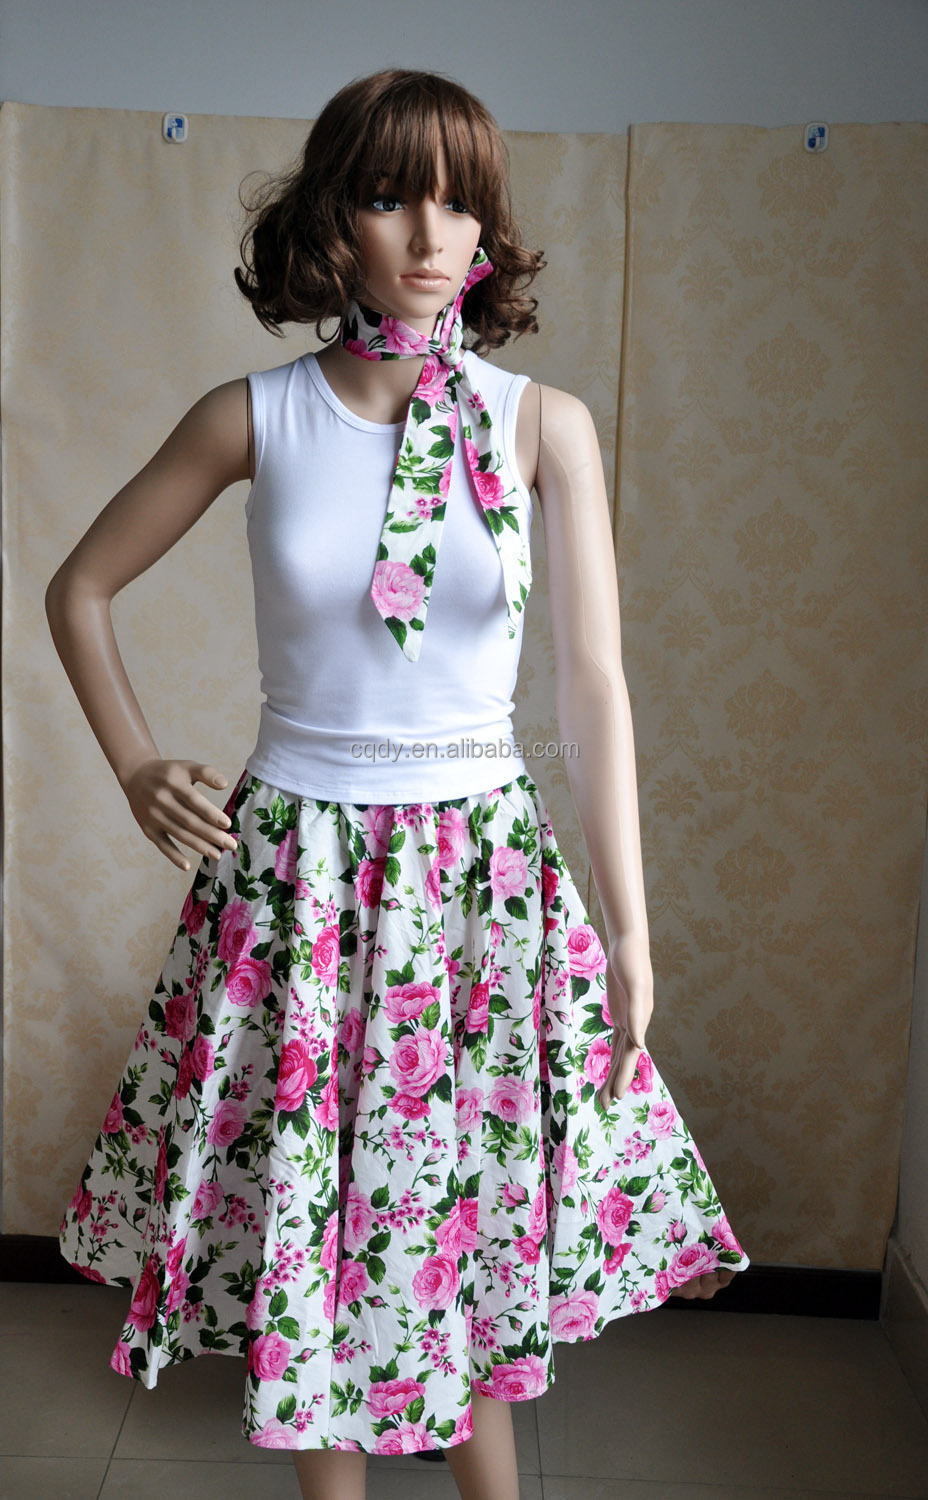 Housewife Dresses 2015